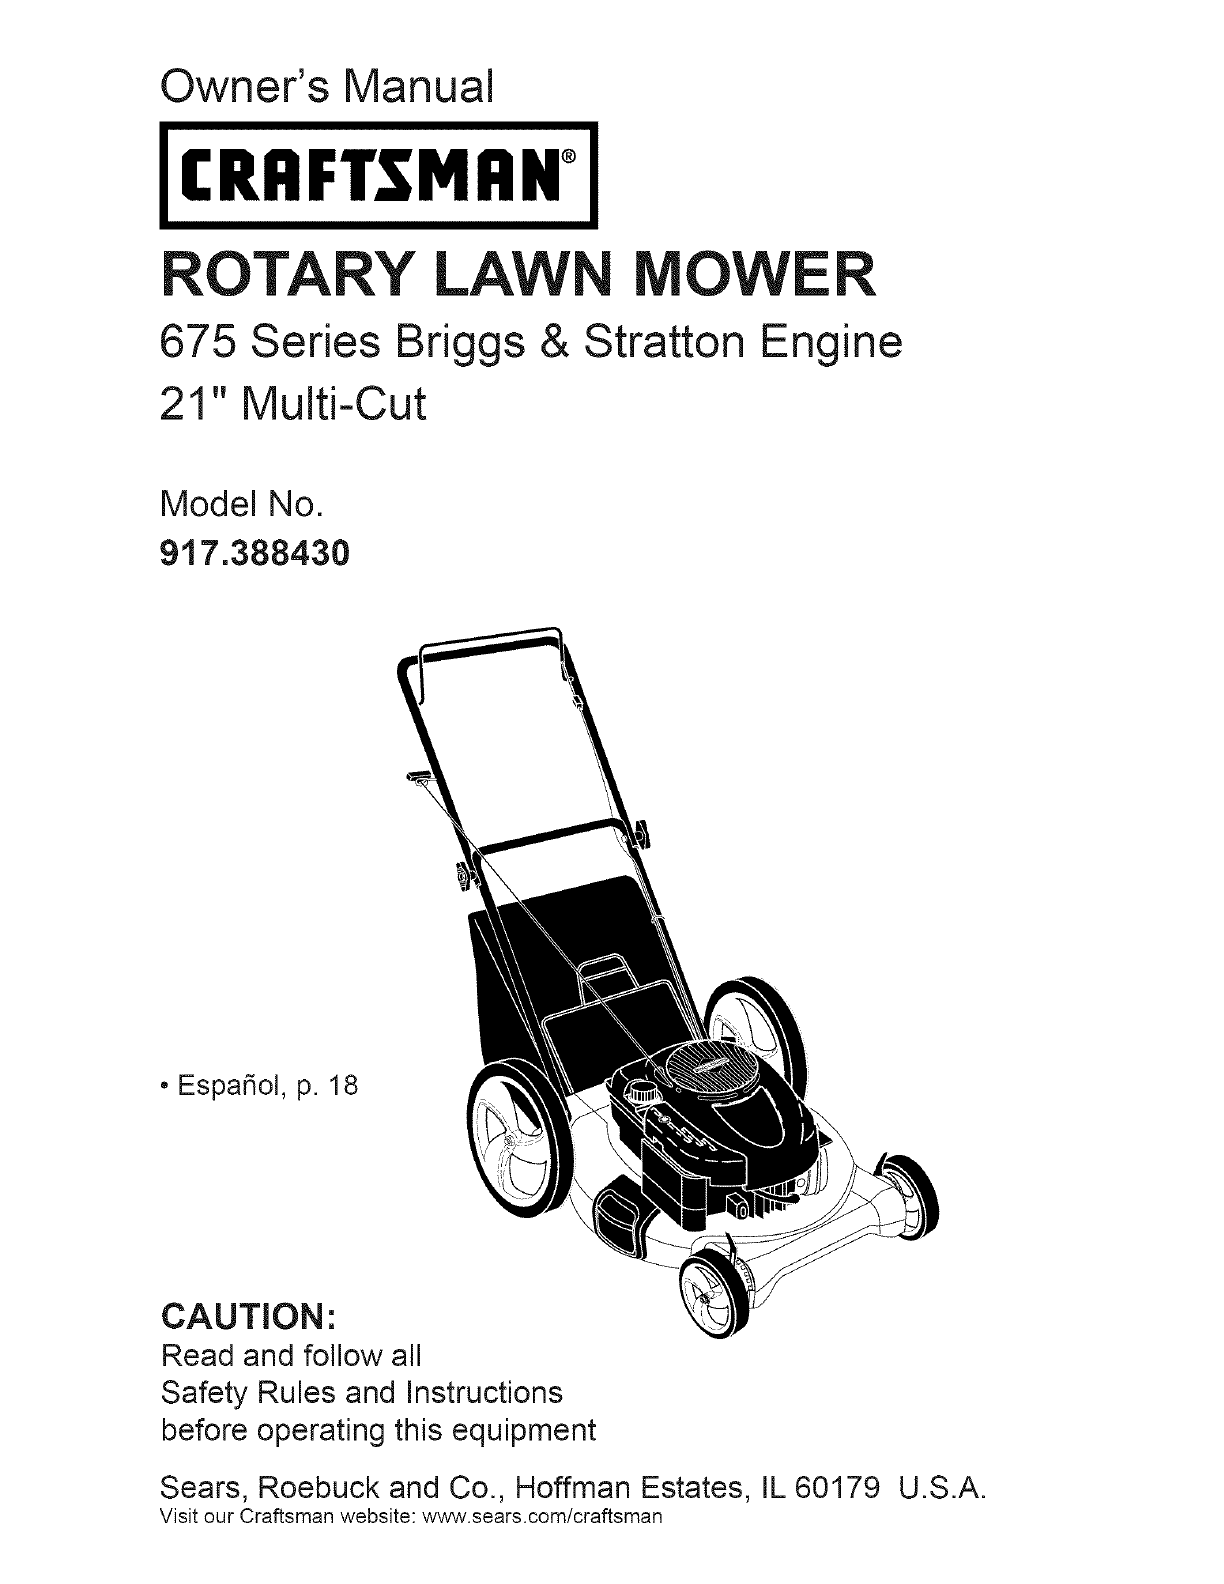 craftsman 917388430 user manual mower manuals and guides l0712546 rh usermanual wiki craftsman lawn mower owner's manual 675 series craftsman 675 lawn mower parts